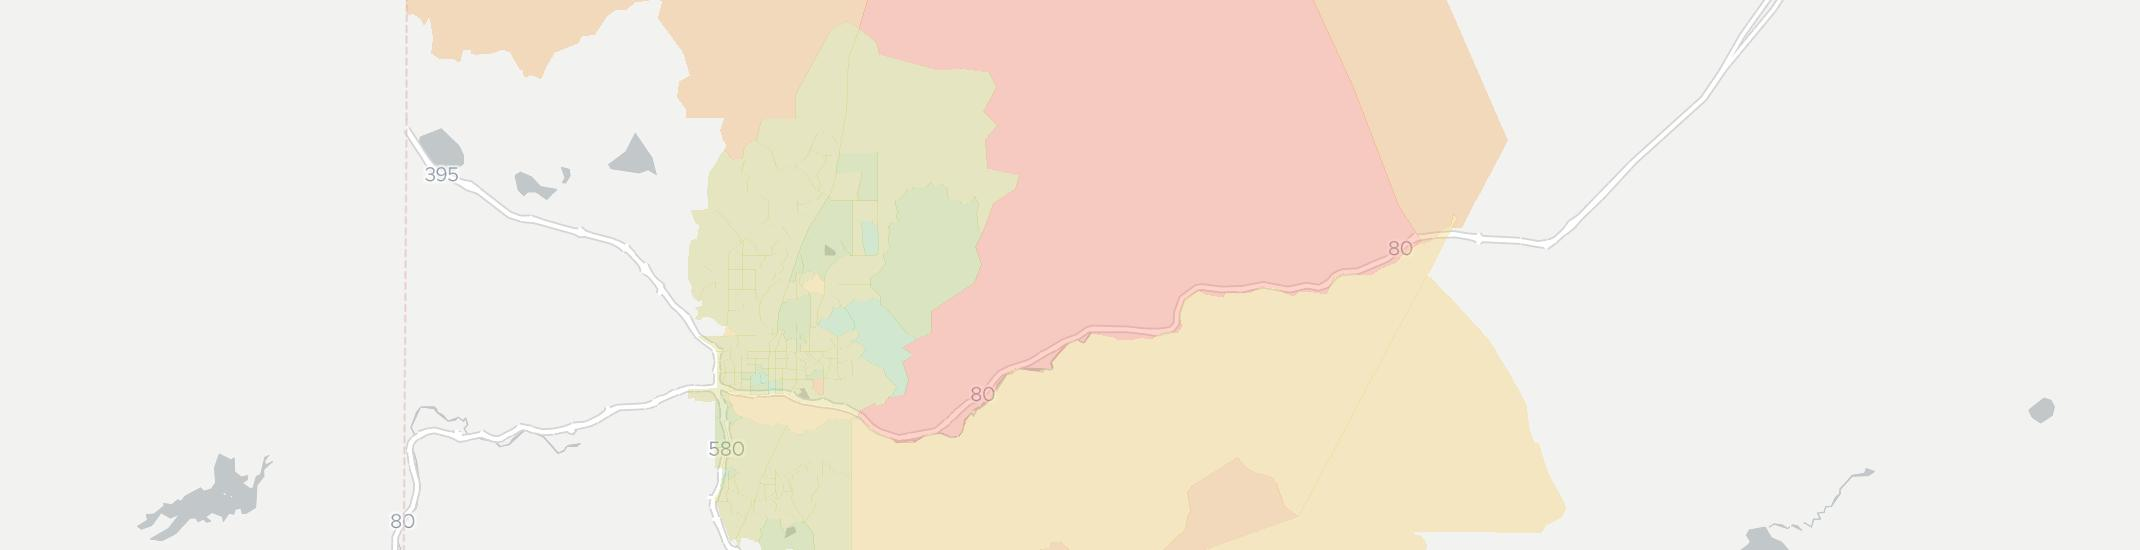 Internet Providers in Sparks, NV: Compare 24 Providers on map of white pine county nevada, map of summerlin nevada, map of crescent valley nevada, map of winnemucca nevada, map of rocklin nevada, map of moapa nevada, map of stateline nevada, map of washoe county nevada, zip code map of nevada, map of henderson nevada, map of mt charleston nevada, map of east las vegas nevada, map of lyon county nevada, map of nevada mountain ranges, map of cold springs nevada, map of wells nevada, map of wadsworth nevada, map of washoe valley nevada, map of glenbrook nevada, map of nevada gerlach,